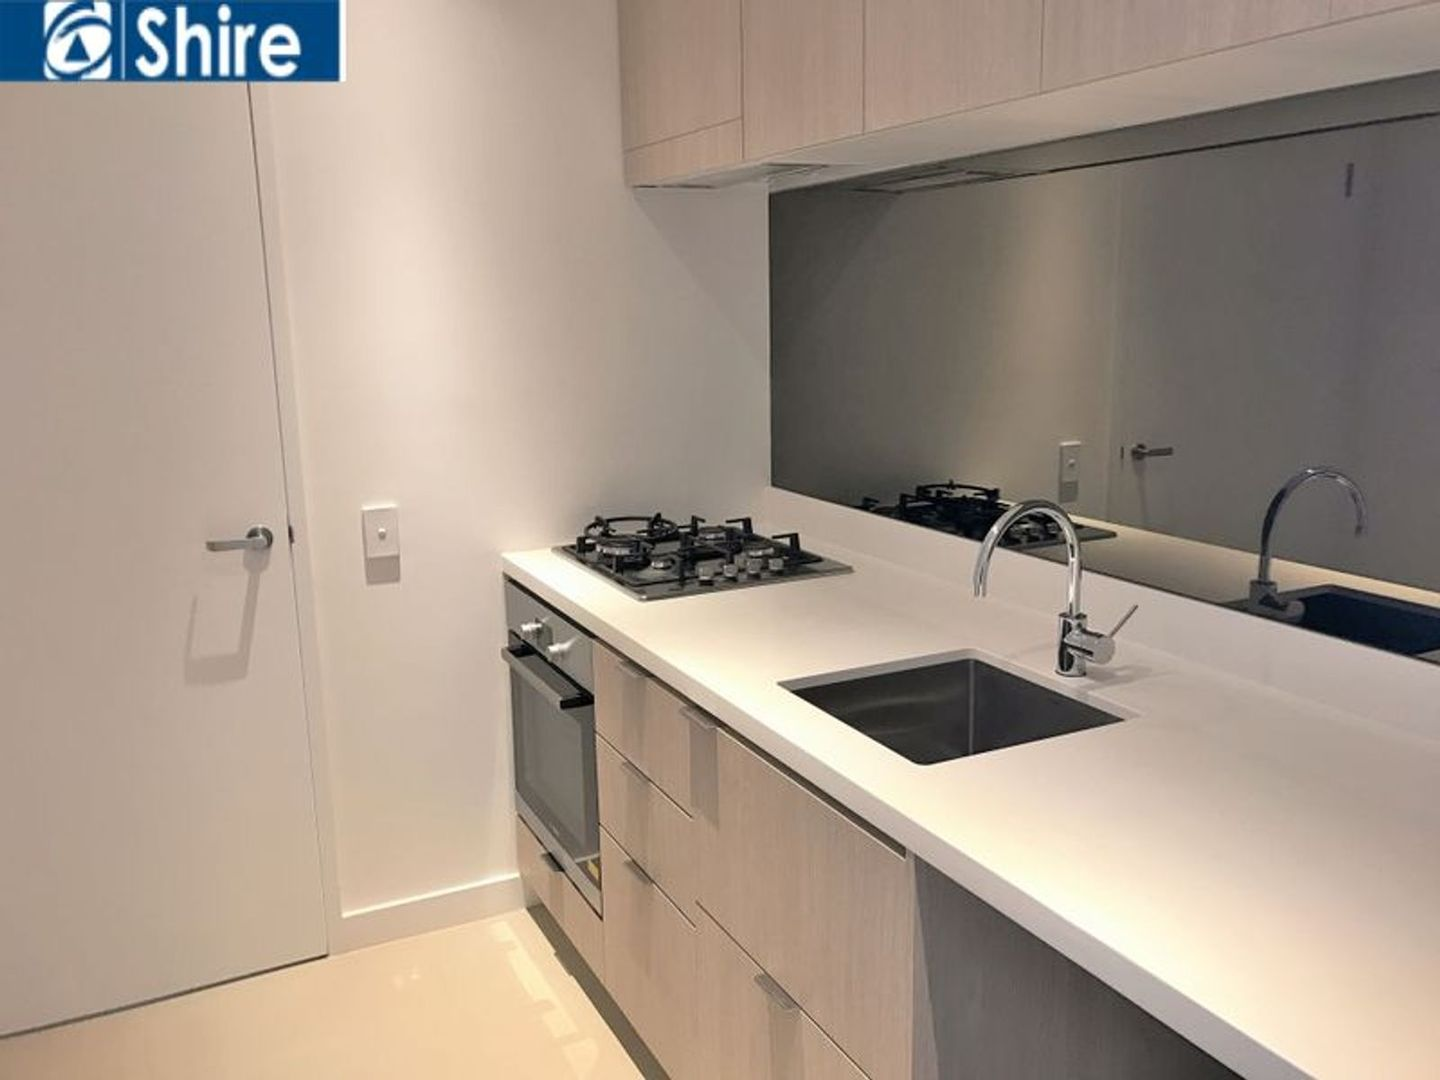 312A/461 2 Dune Walk, Captain Cook Drive, Woolooware NSW 2230, Image 1